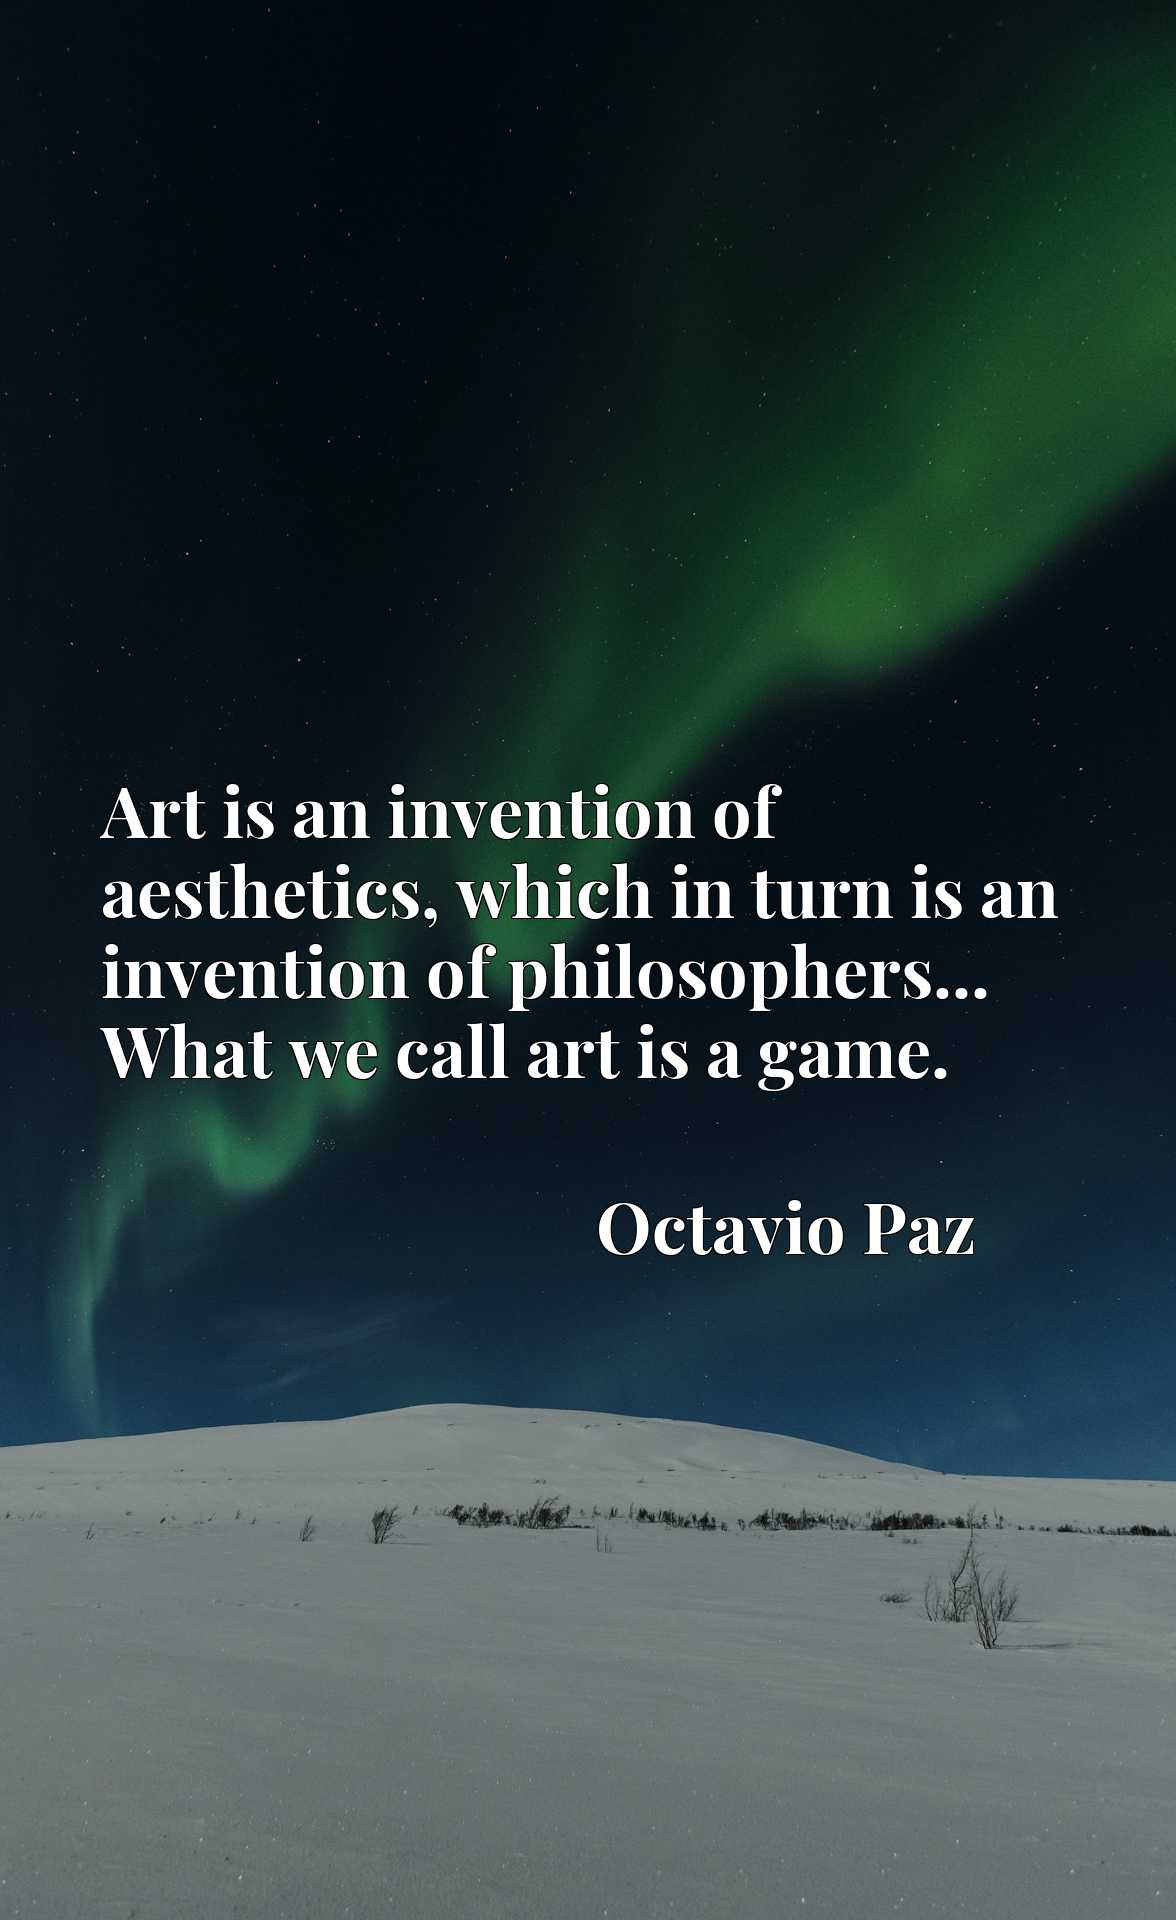 Art is an invention of aesthetics, which in turn is an invention of philosophers... What we call art is a game.